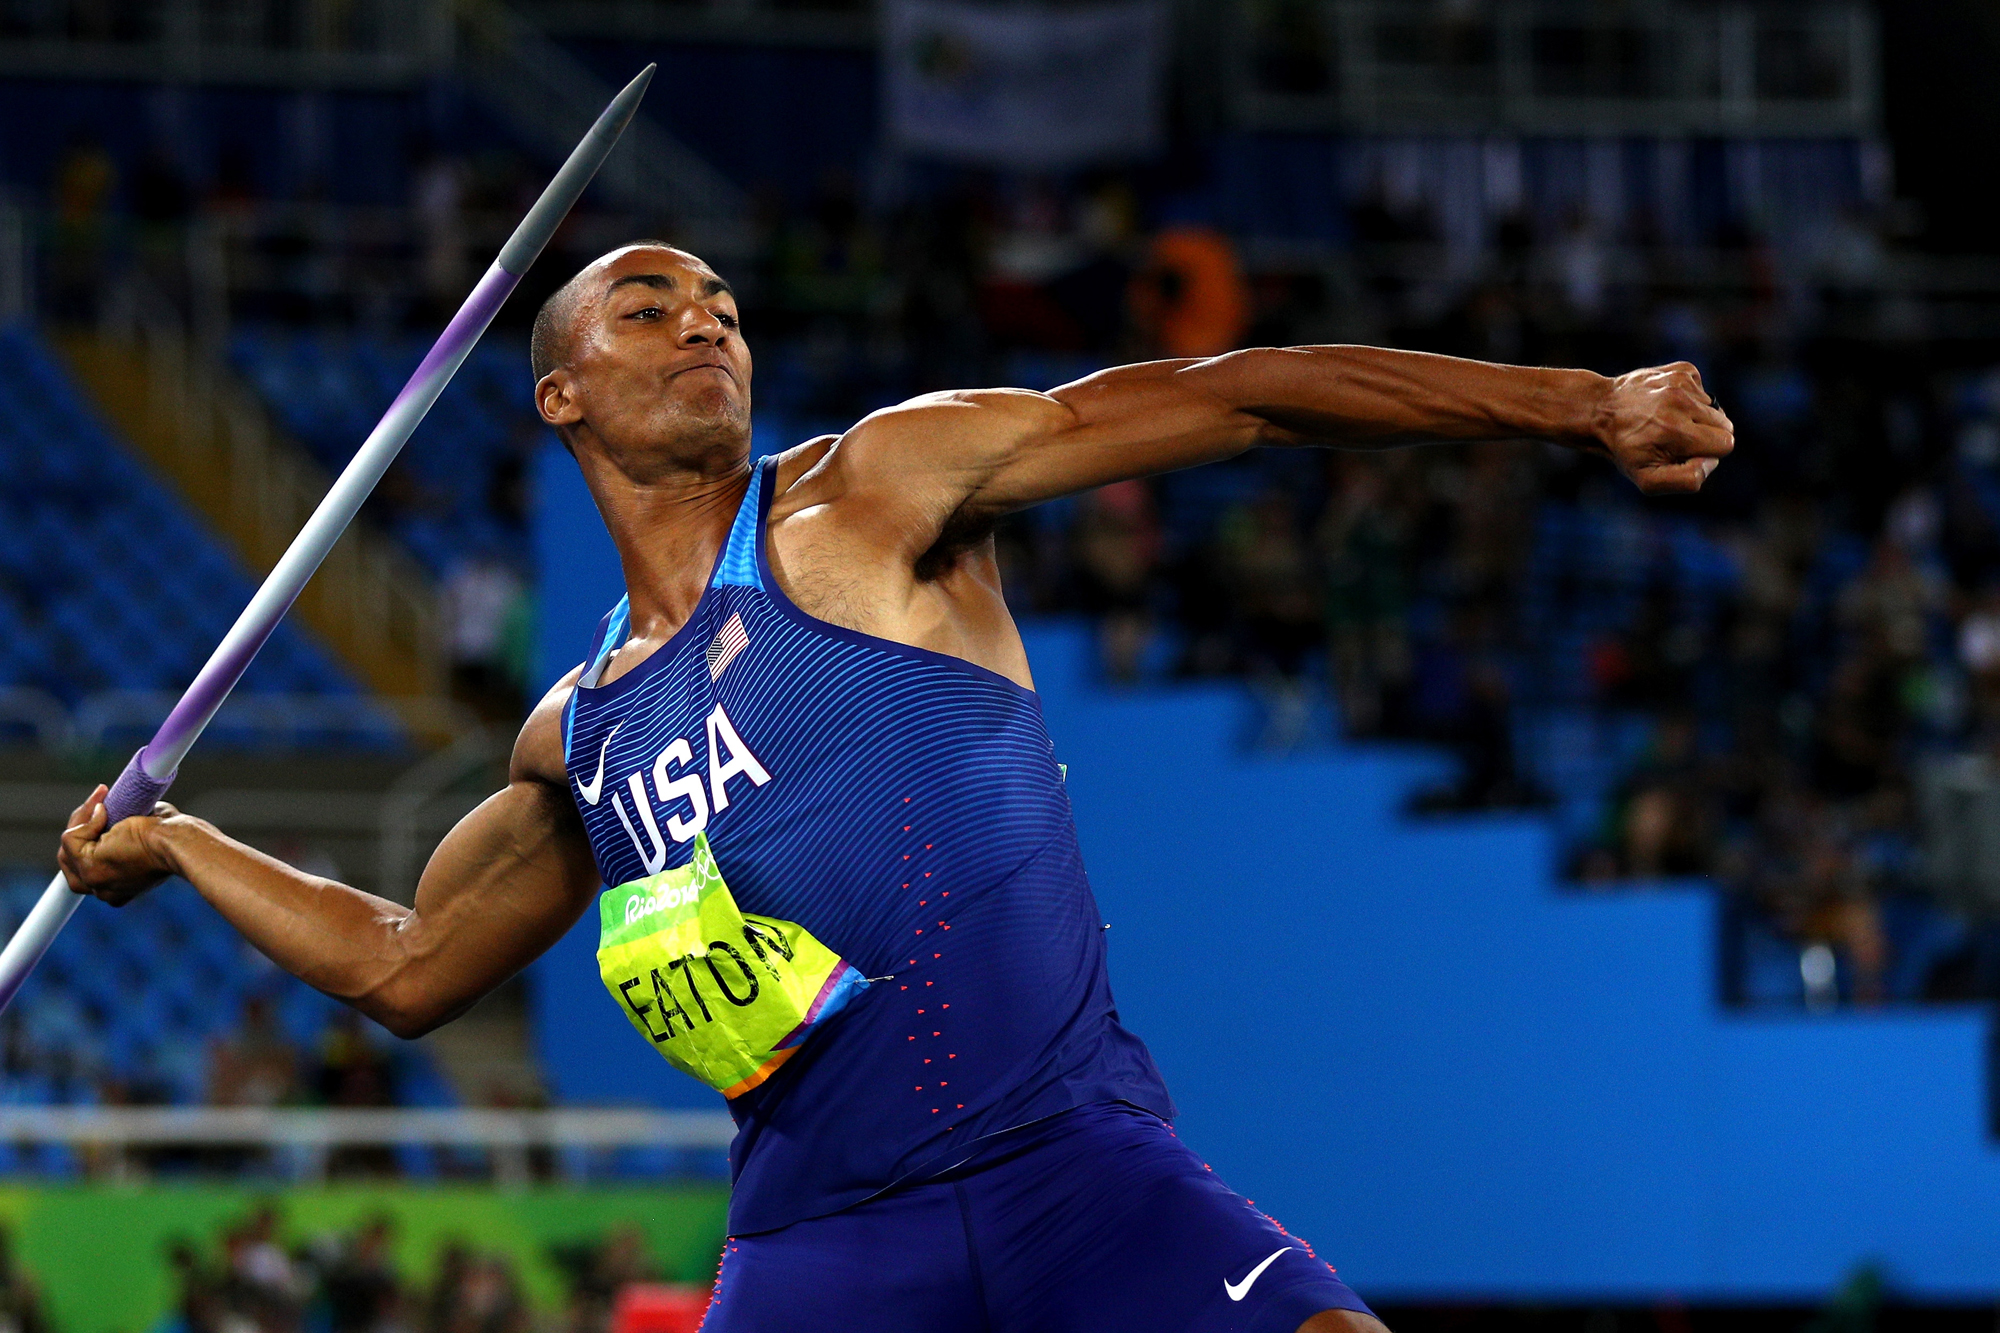 Ashton Eaton of the United States competes in the Men's Decathlon Javelin Throw on Day 13 of the Rio 2016 Olympic Games at the Olympic Stadium on August 18, 2016 in Rio de Janeiro, Brazil.